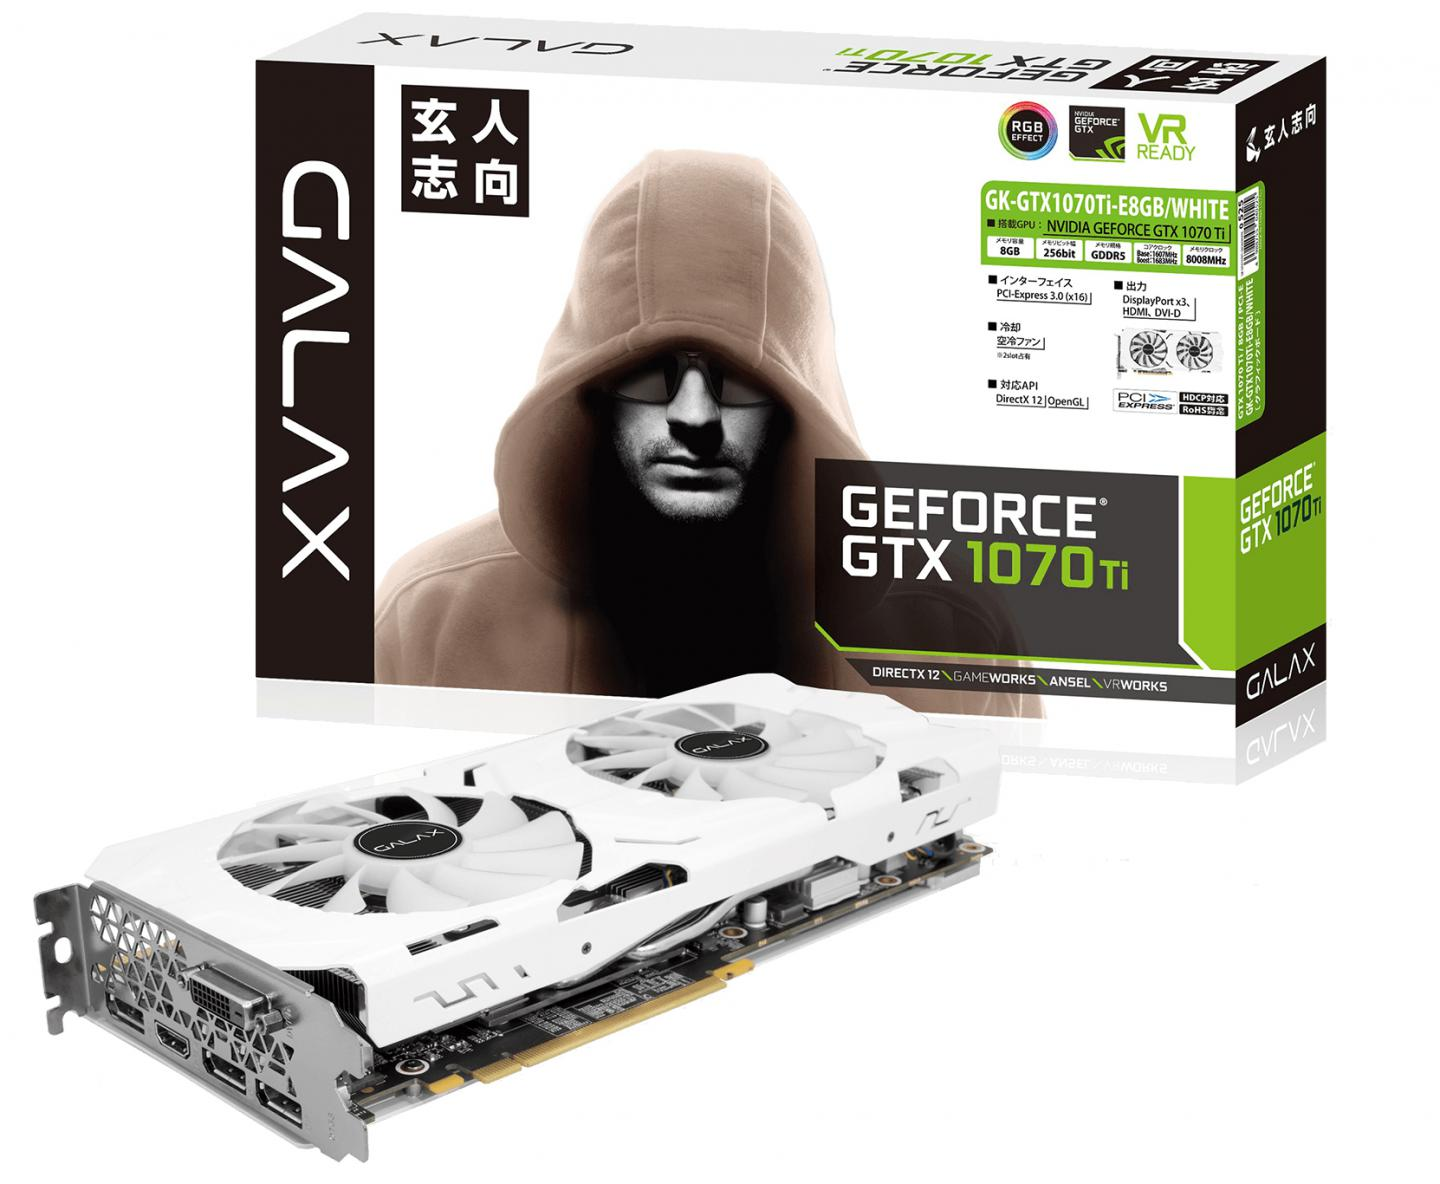 Galax To Offer GeForce GTX 1070 Ti With White Cooler